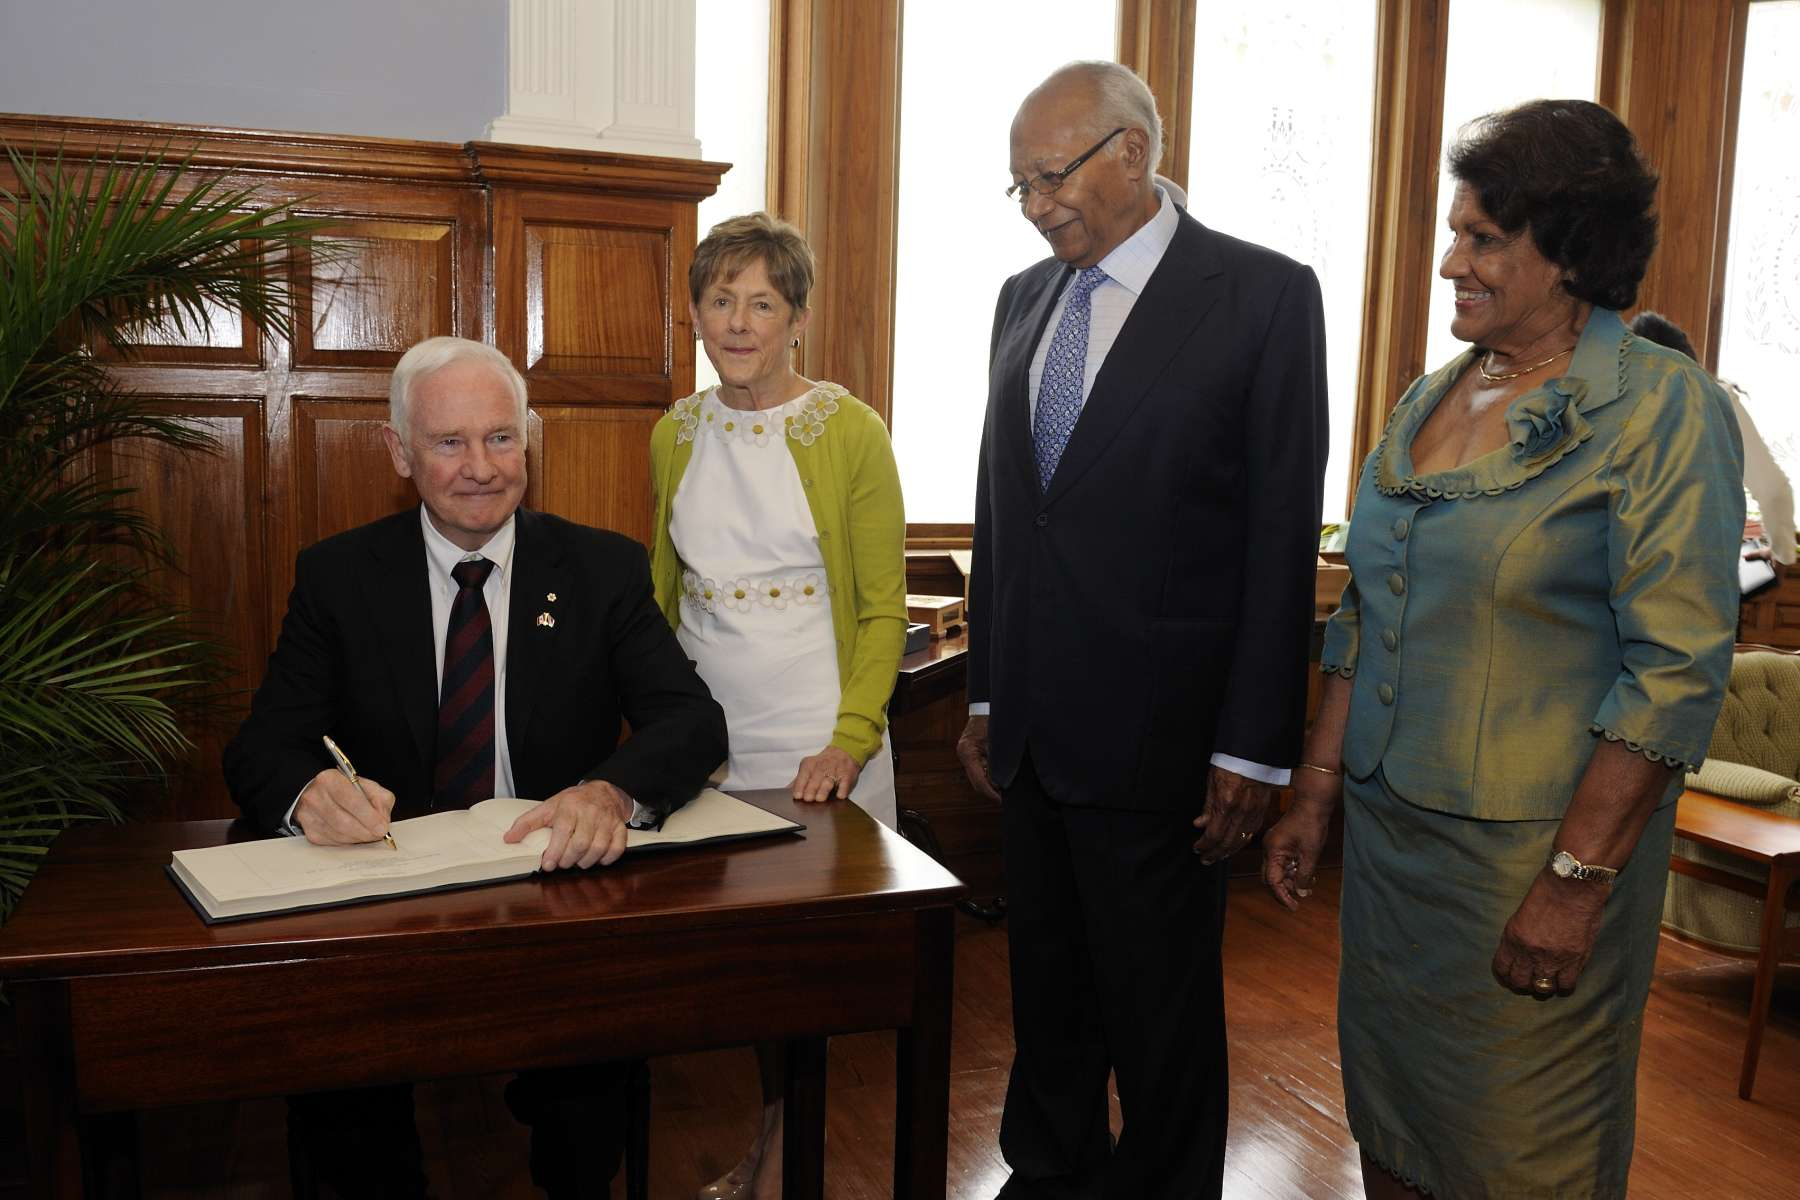 Their Excellencies met with His Excellency George Maxwell Richards, President of the Republic of Trinidad and Tobago.